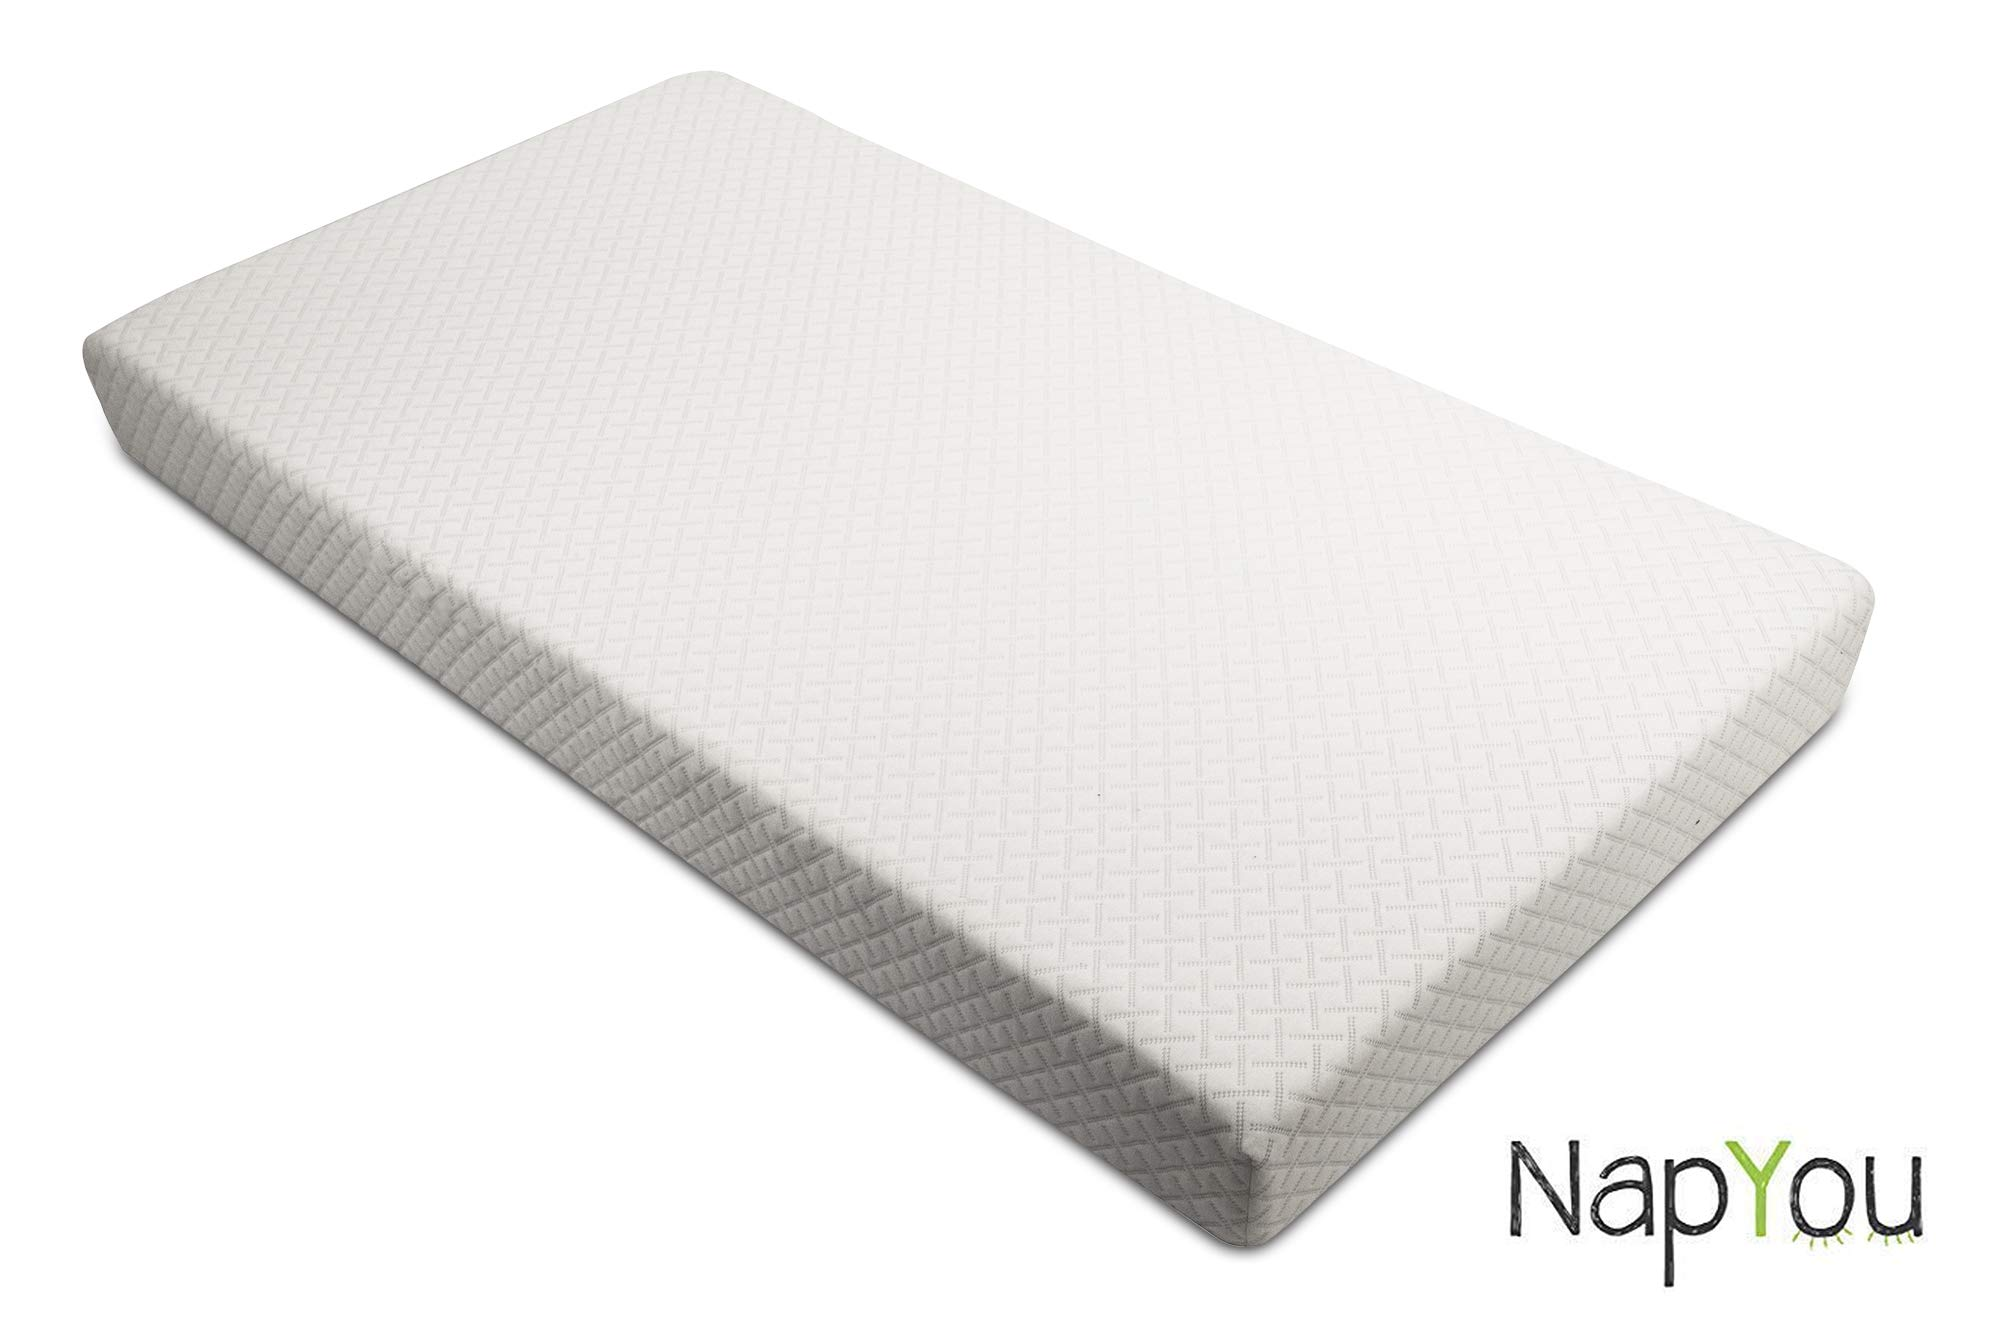 Official Amazon Exclusive NapYou Crib Mattress for Baby or Toddler Bed Mattress with Organic Cotton and Waterproof Cover by NapYou